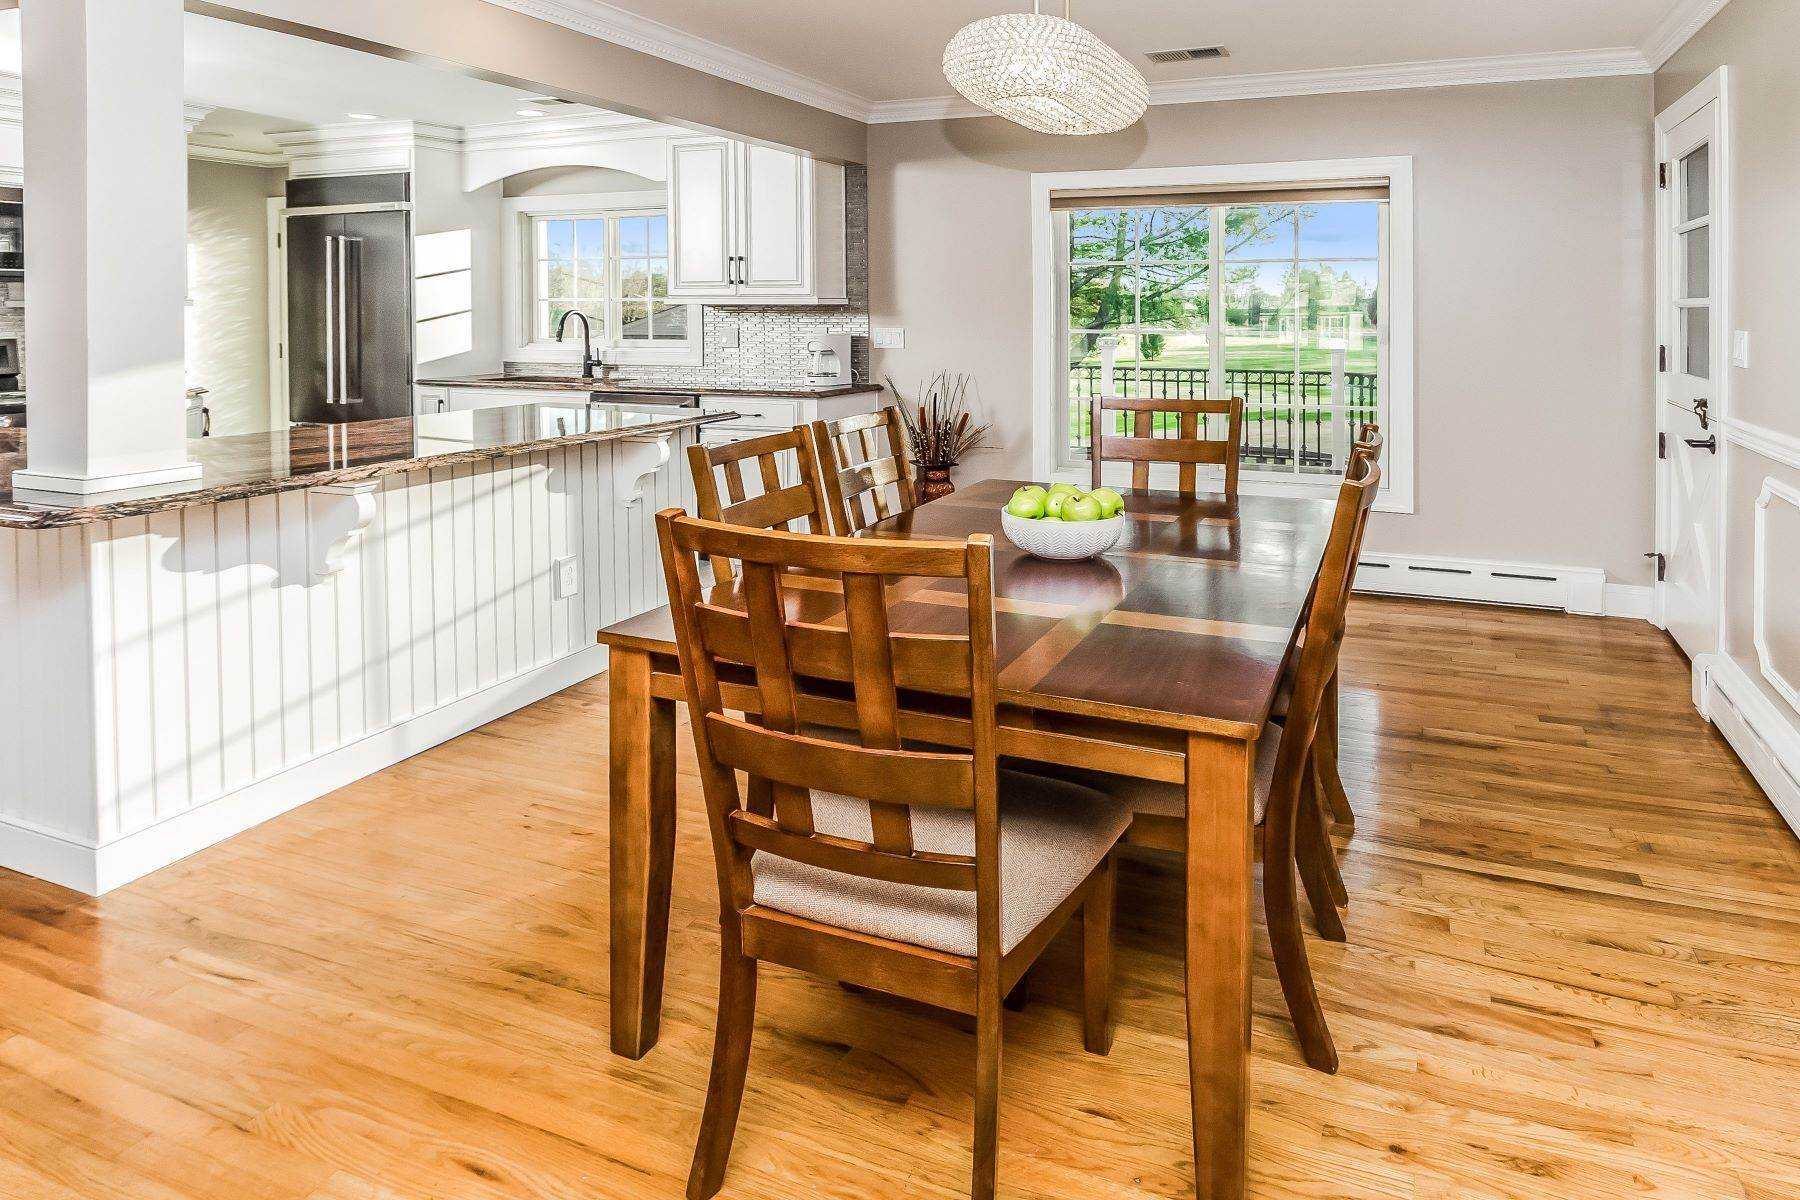 10. Single Family Homes for Sale at Multi-Generational Living At Its Best 427 Belle Mead Griggstown Road, Belle Mead, New Jersey 08502 United States